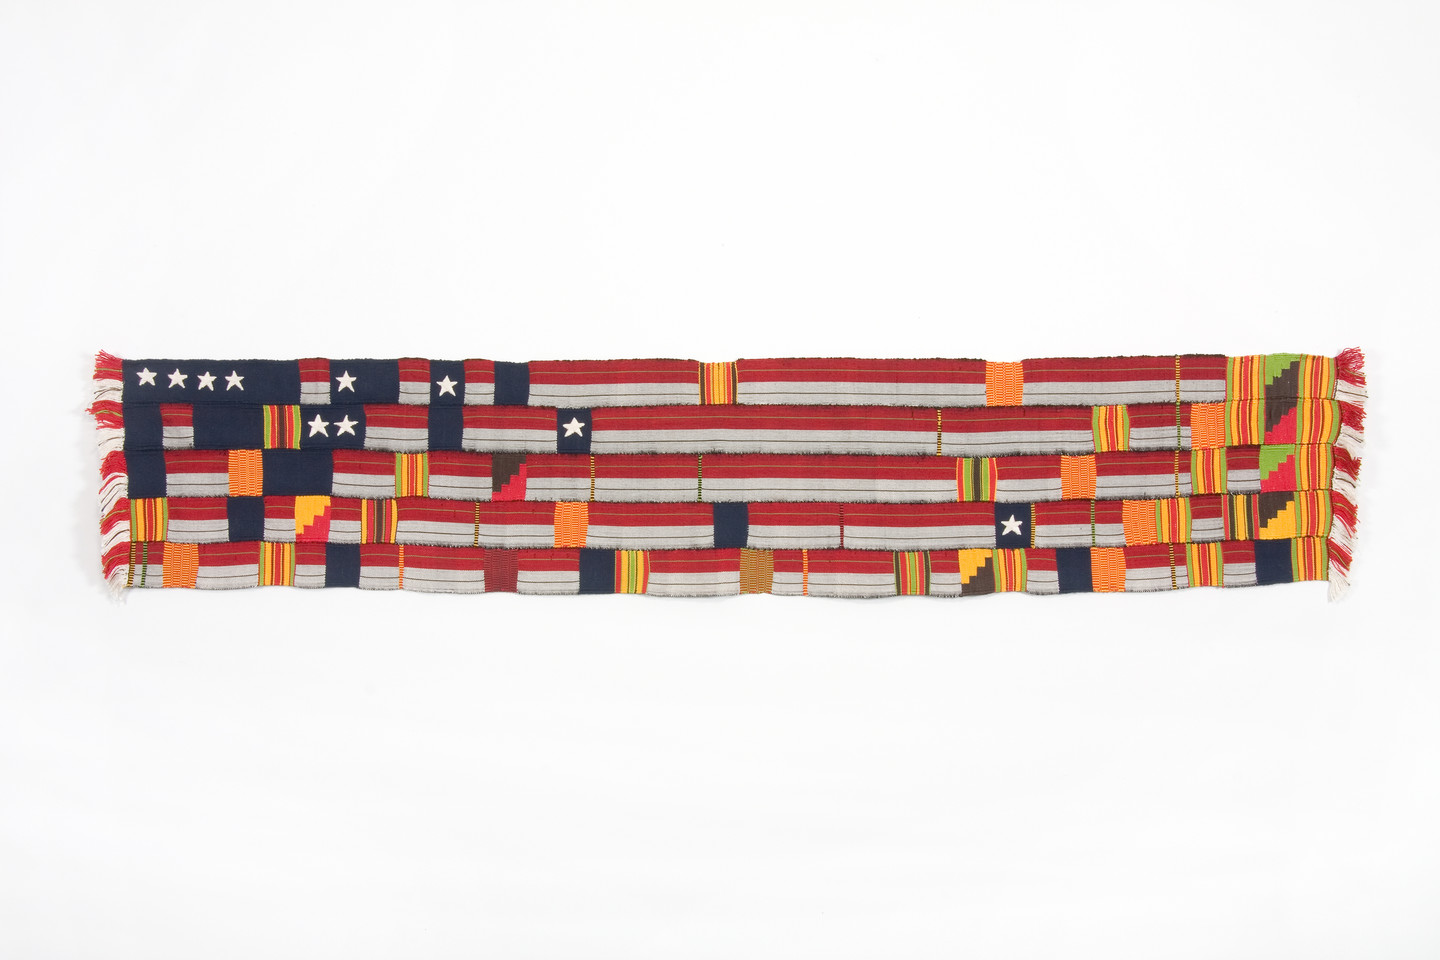 A horizontal, rectangular fabric artwork, made of woven strips of silk and cotton. The colors of the horizontal fabric strips are red, white, and blue, reminiscent of the American flag, while interwoven the vertical strips are shades of yellow, orange and green.